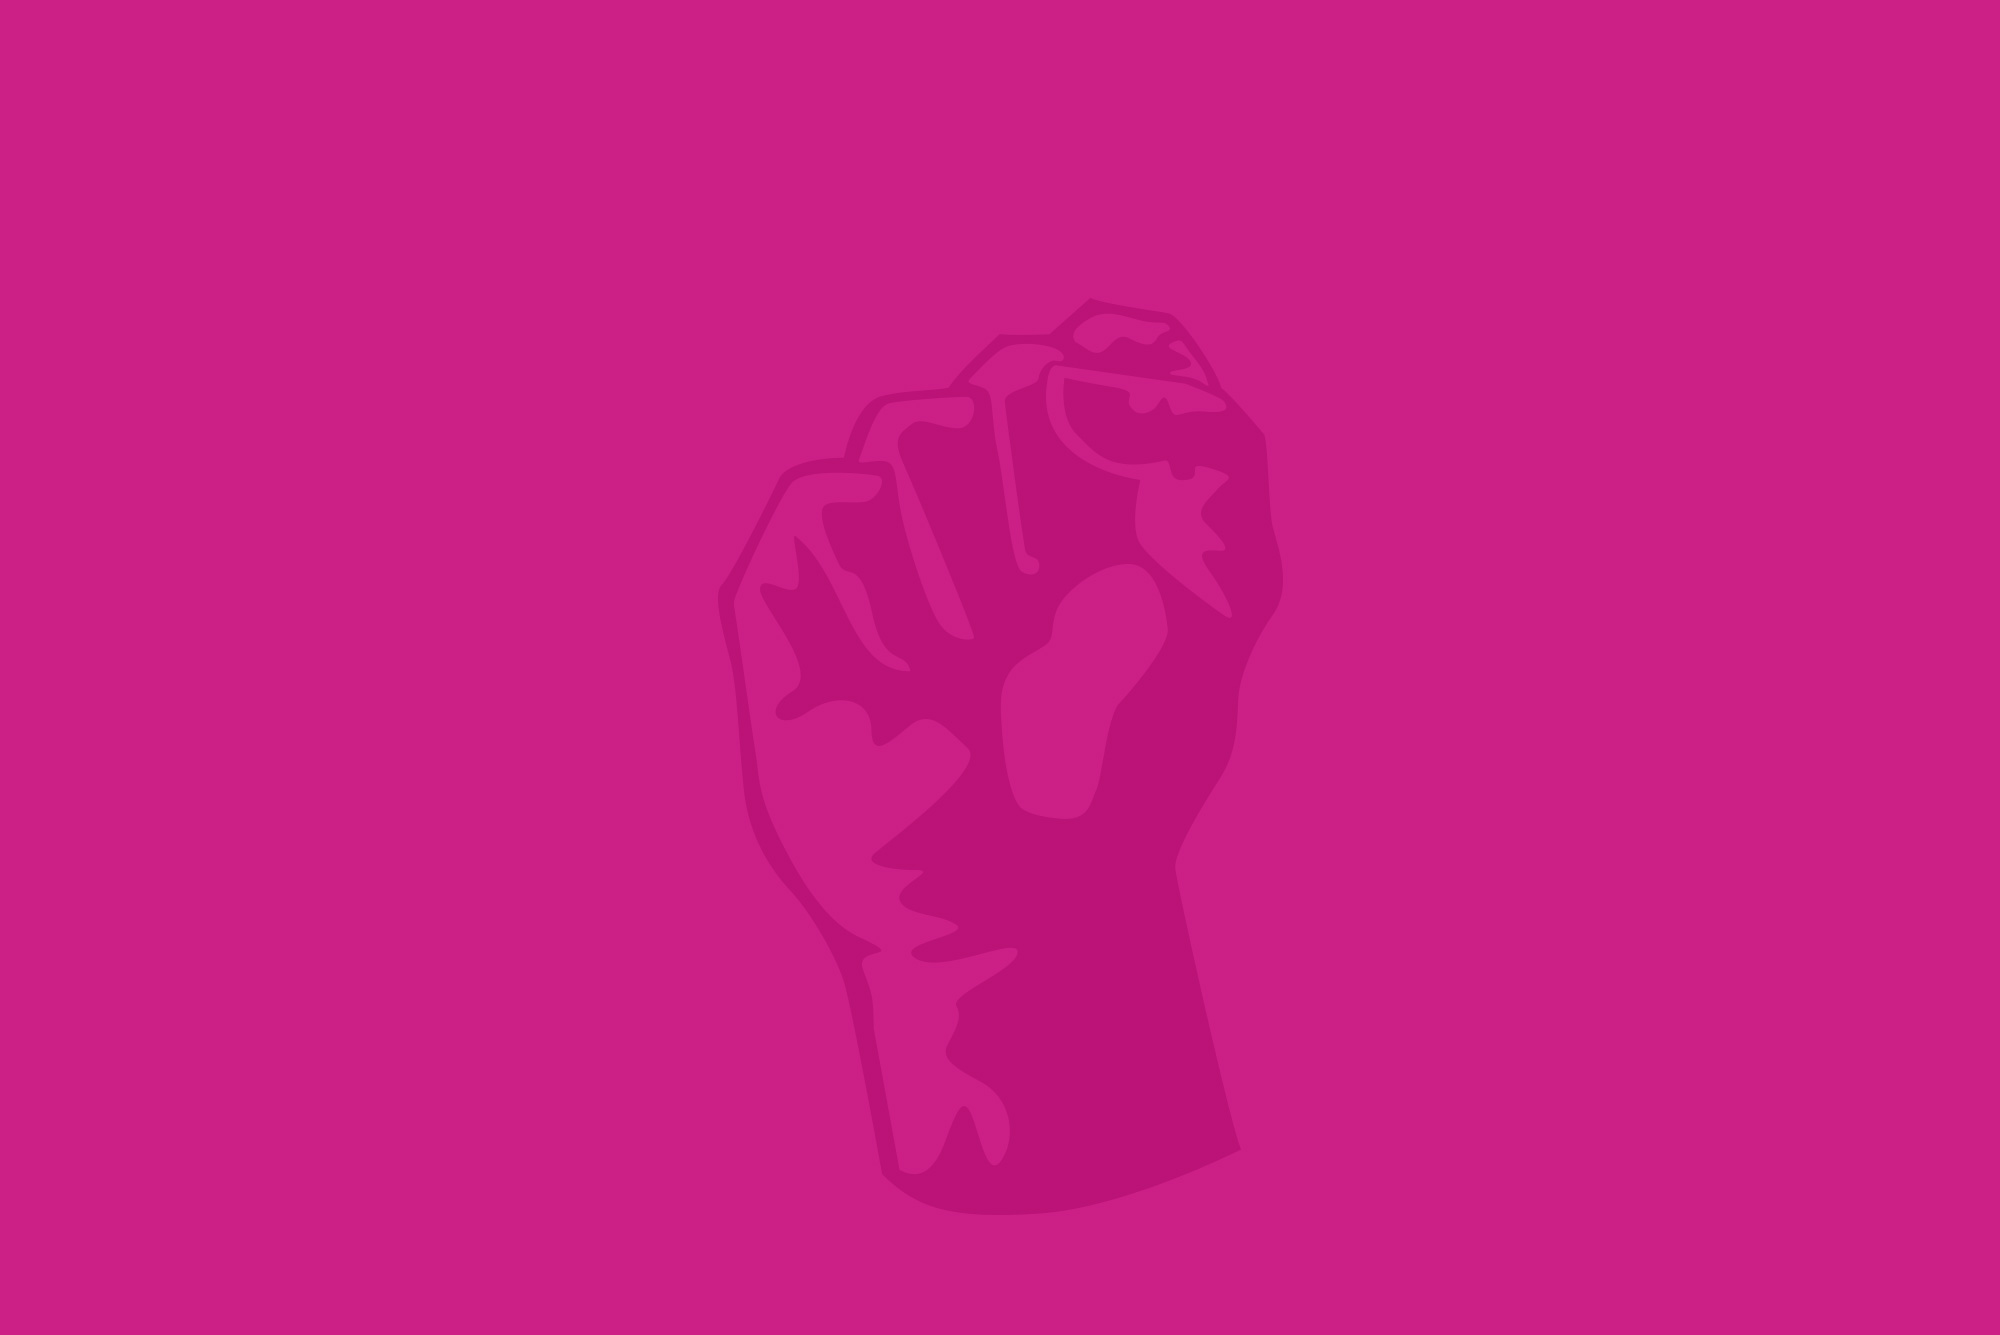 Clenched fist on a pink background - mobile revolution